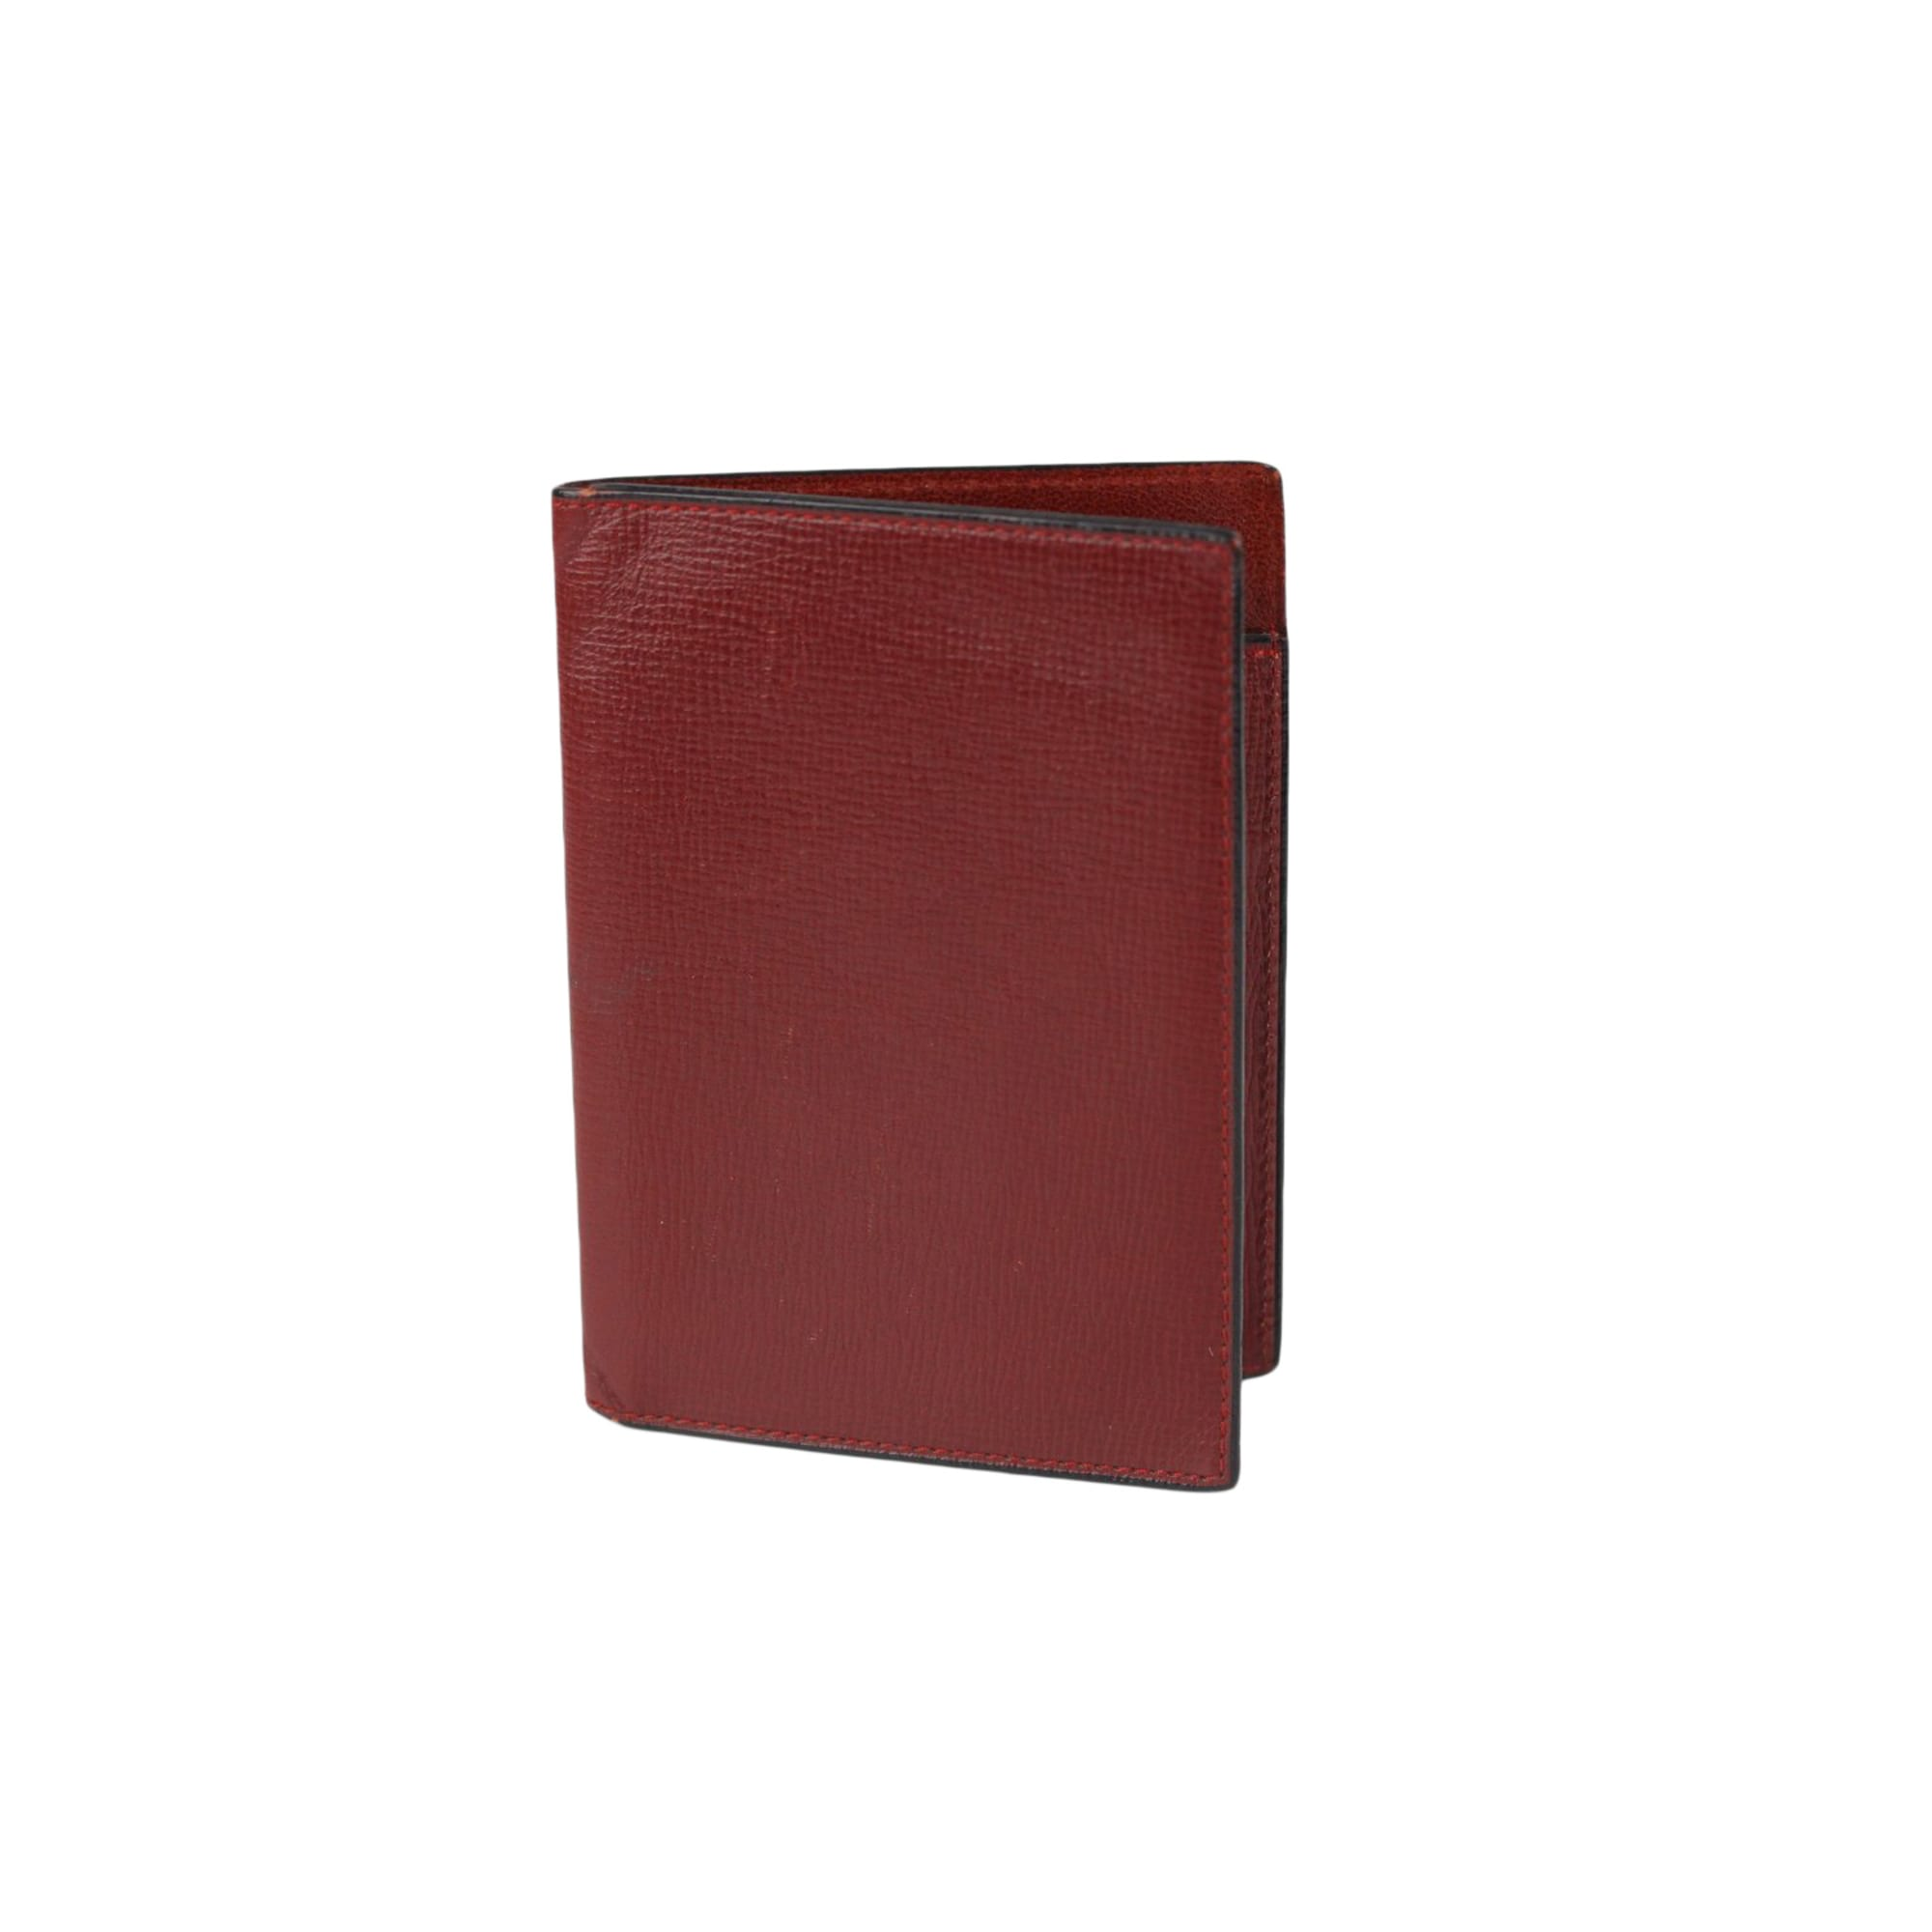 Portefeuille VALEXTRA cuir rouge